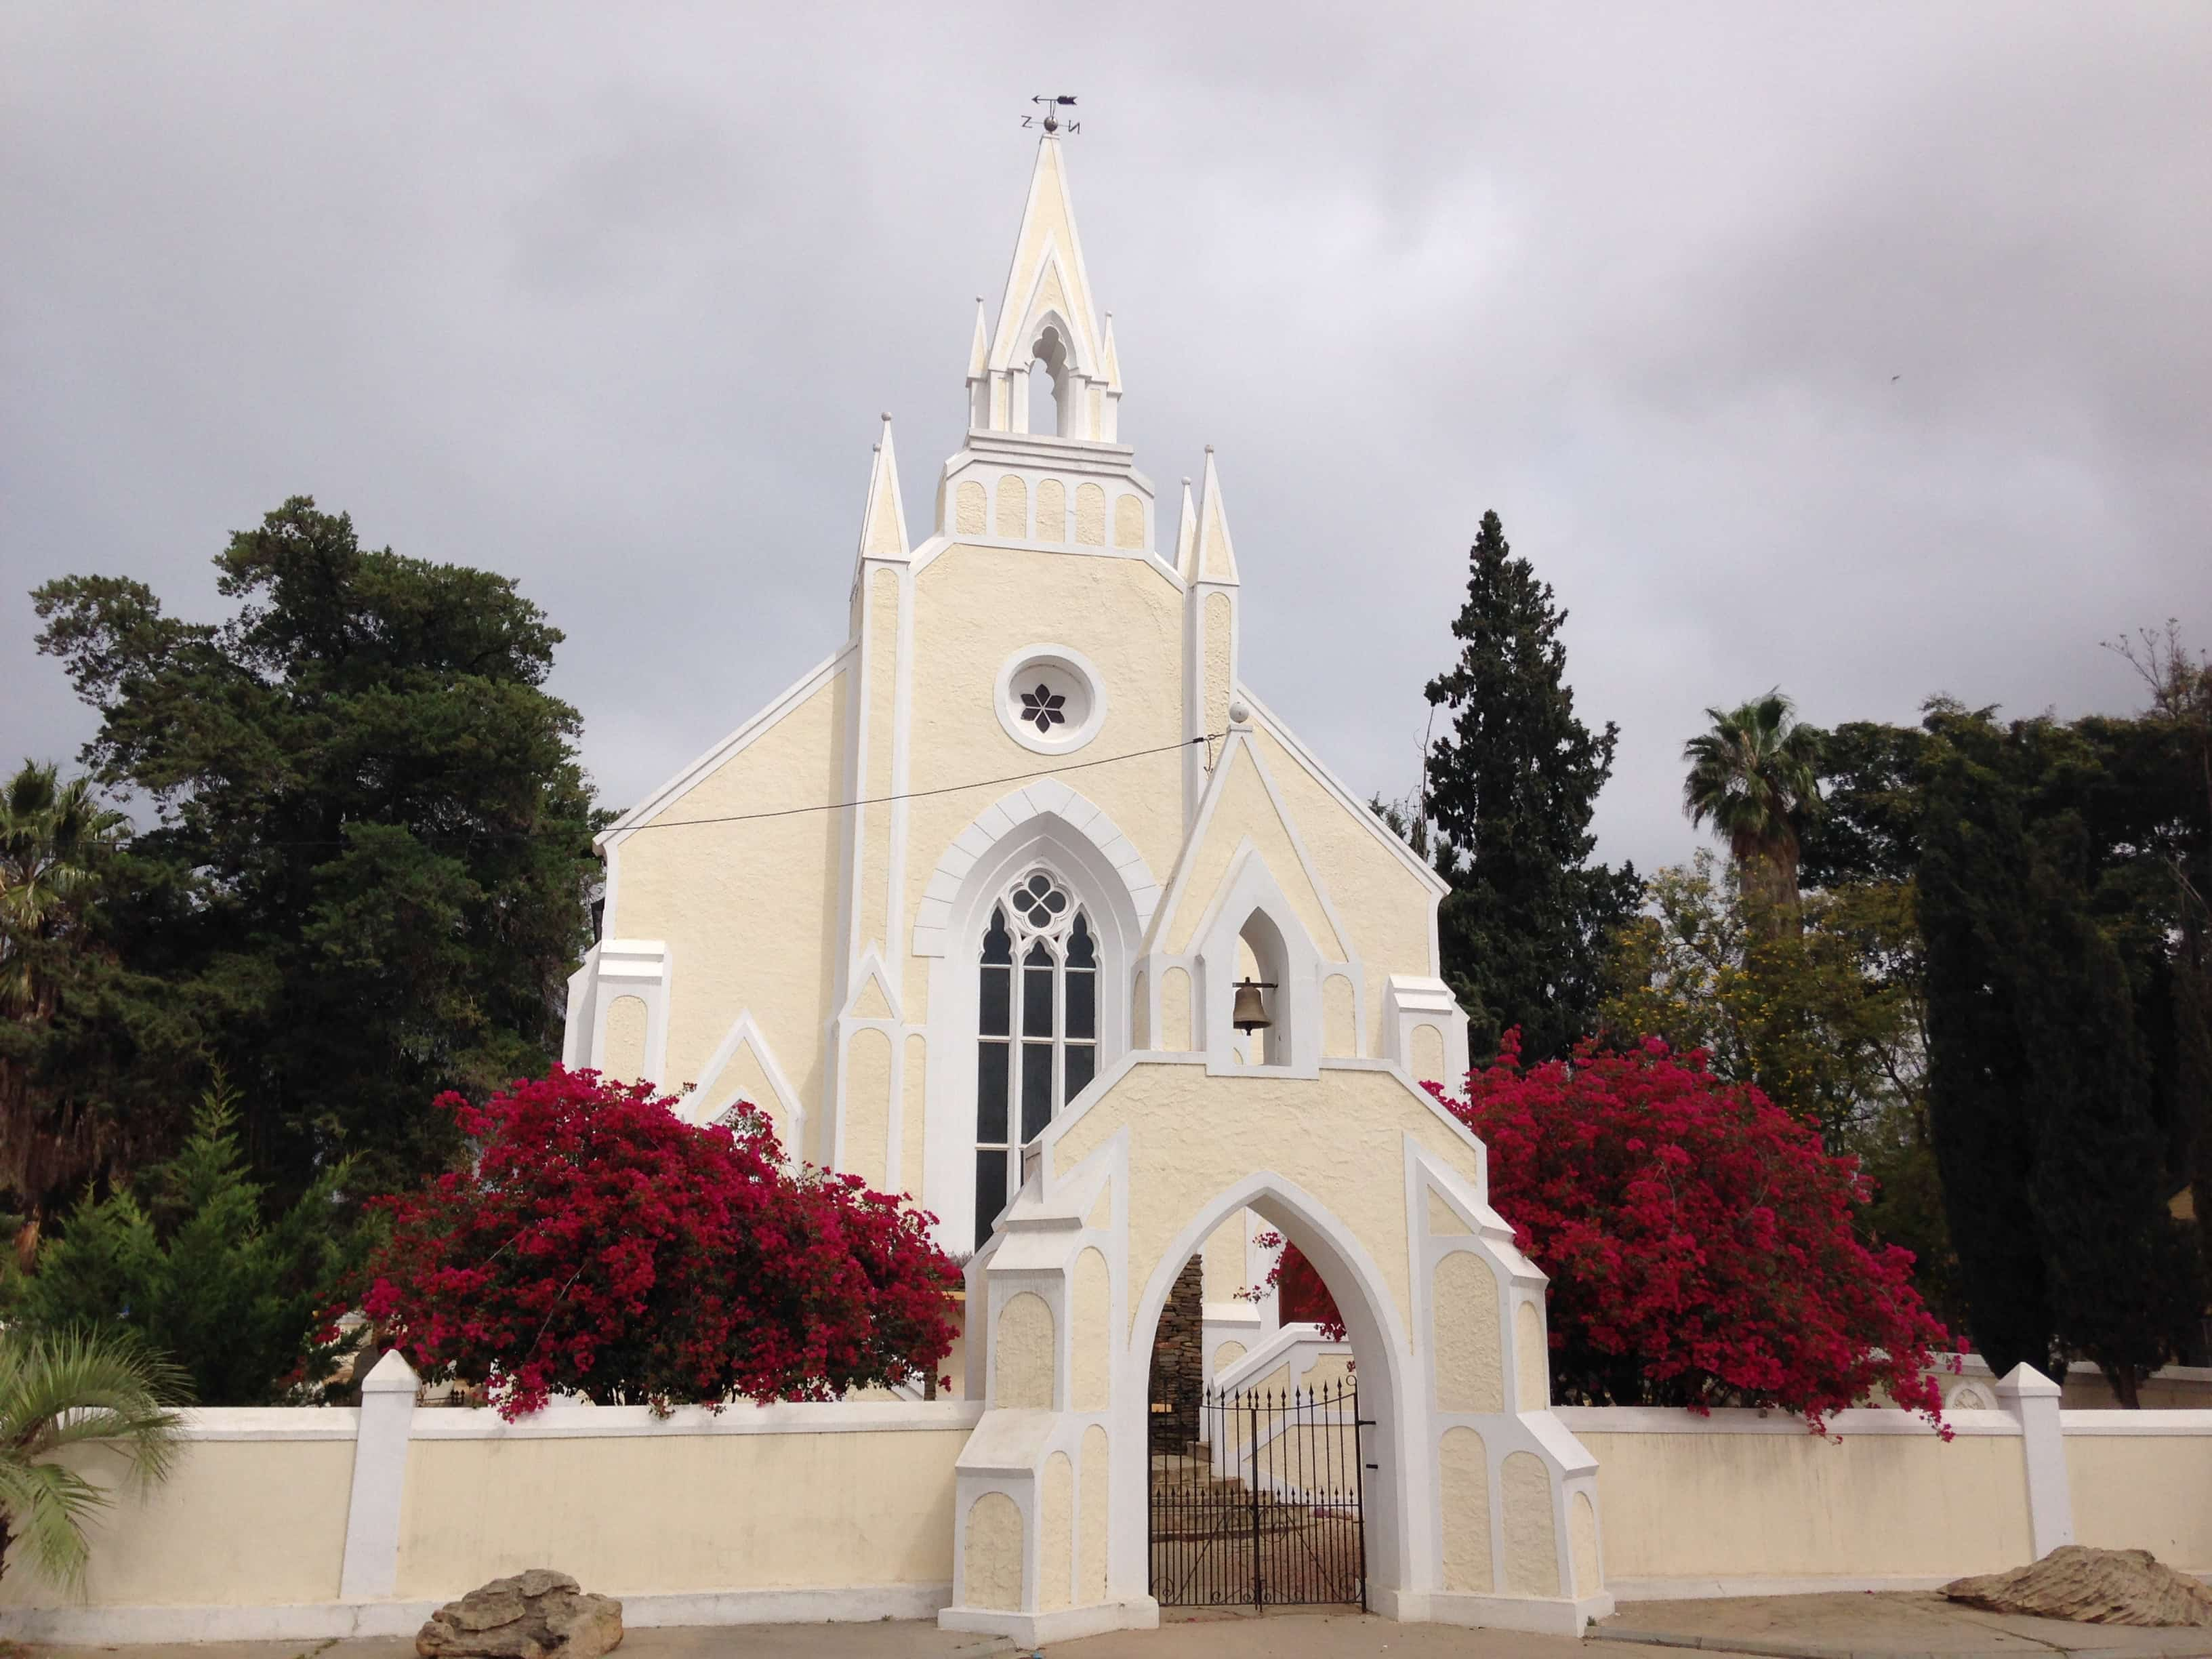 Top places worth visiting in Clanwilliam